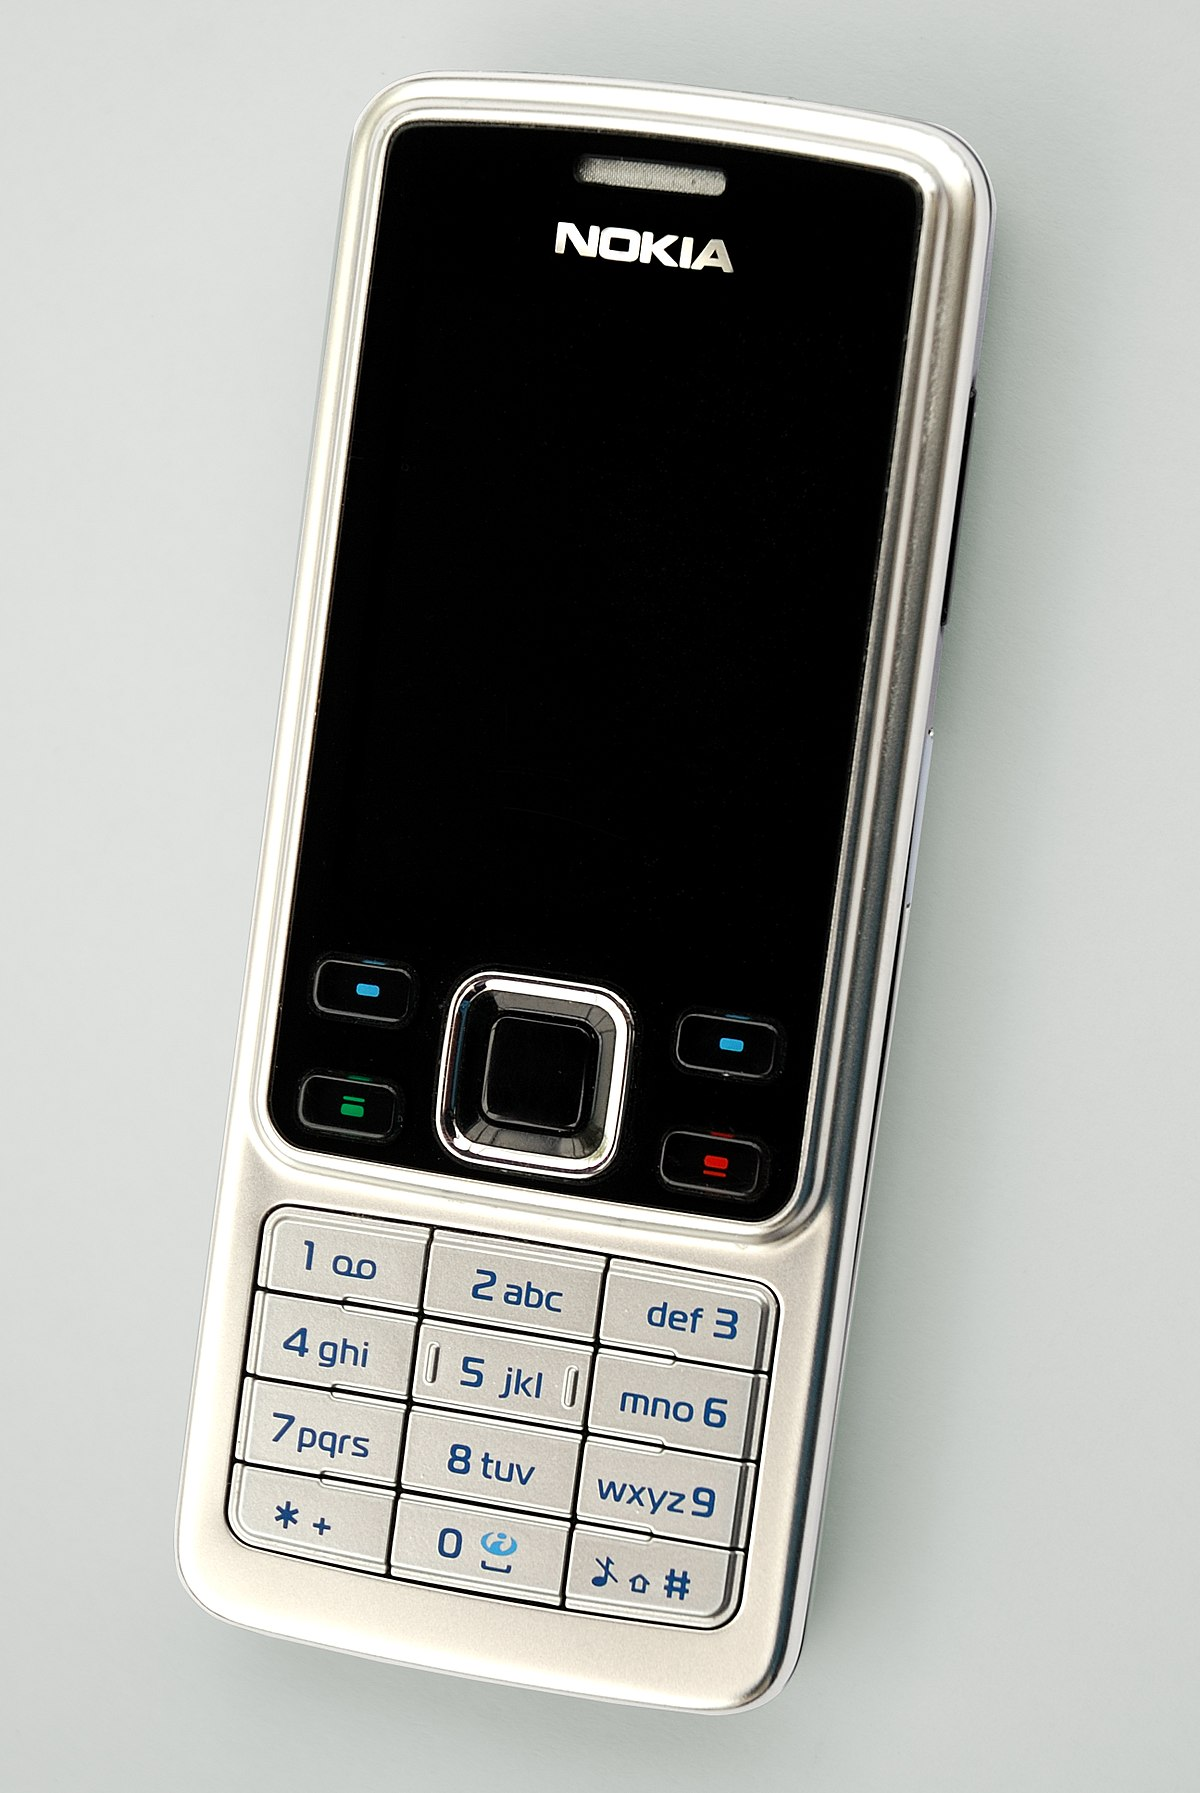 nokia 6708 flash file